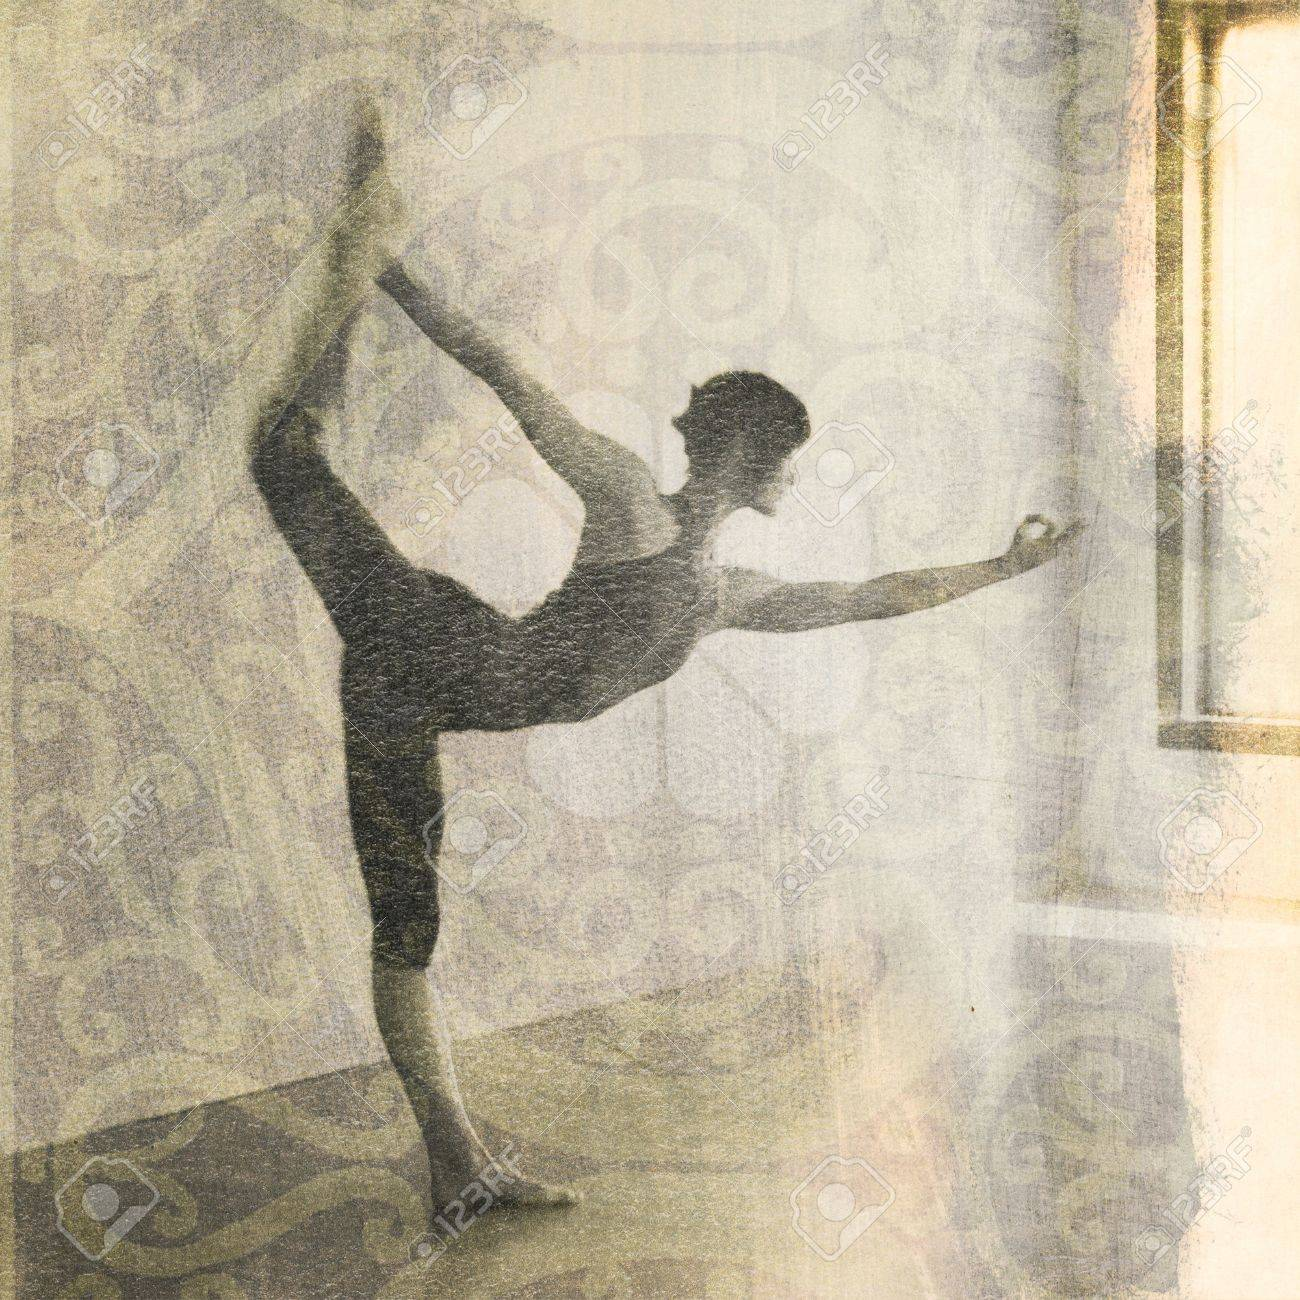 Woman in yoga pose Natarajasana or dancer's pose. Scan of alternative fine art photography print. Stock Photo - 5161192